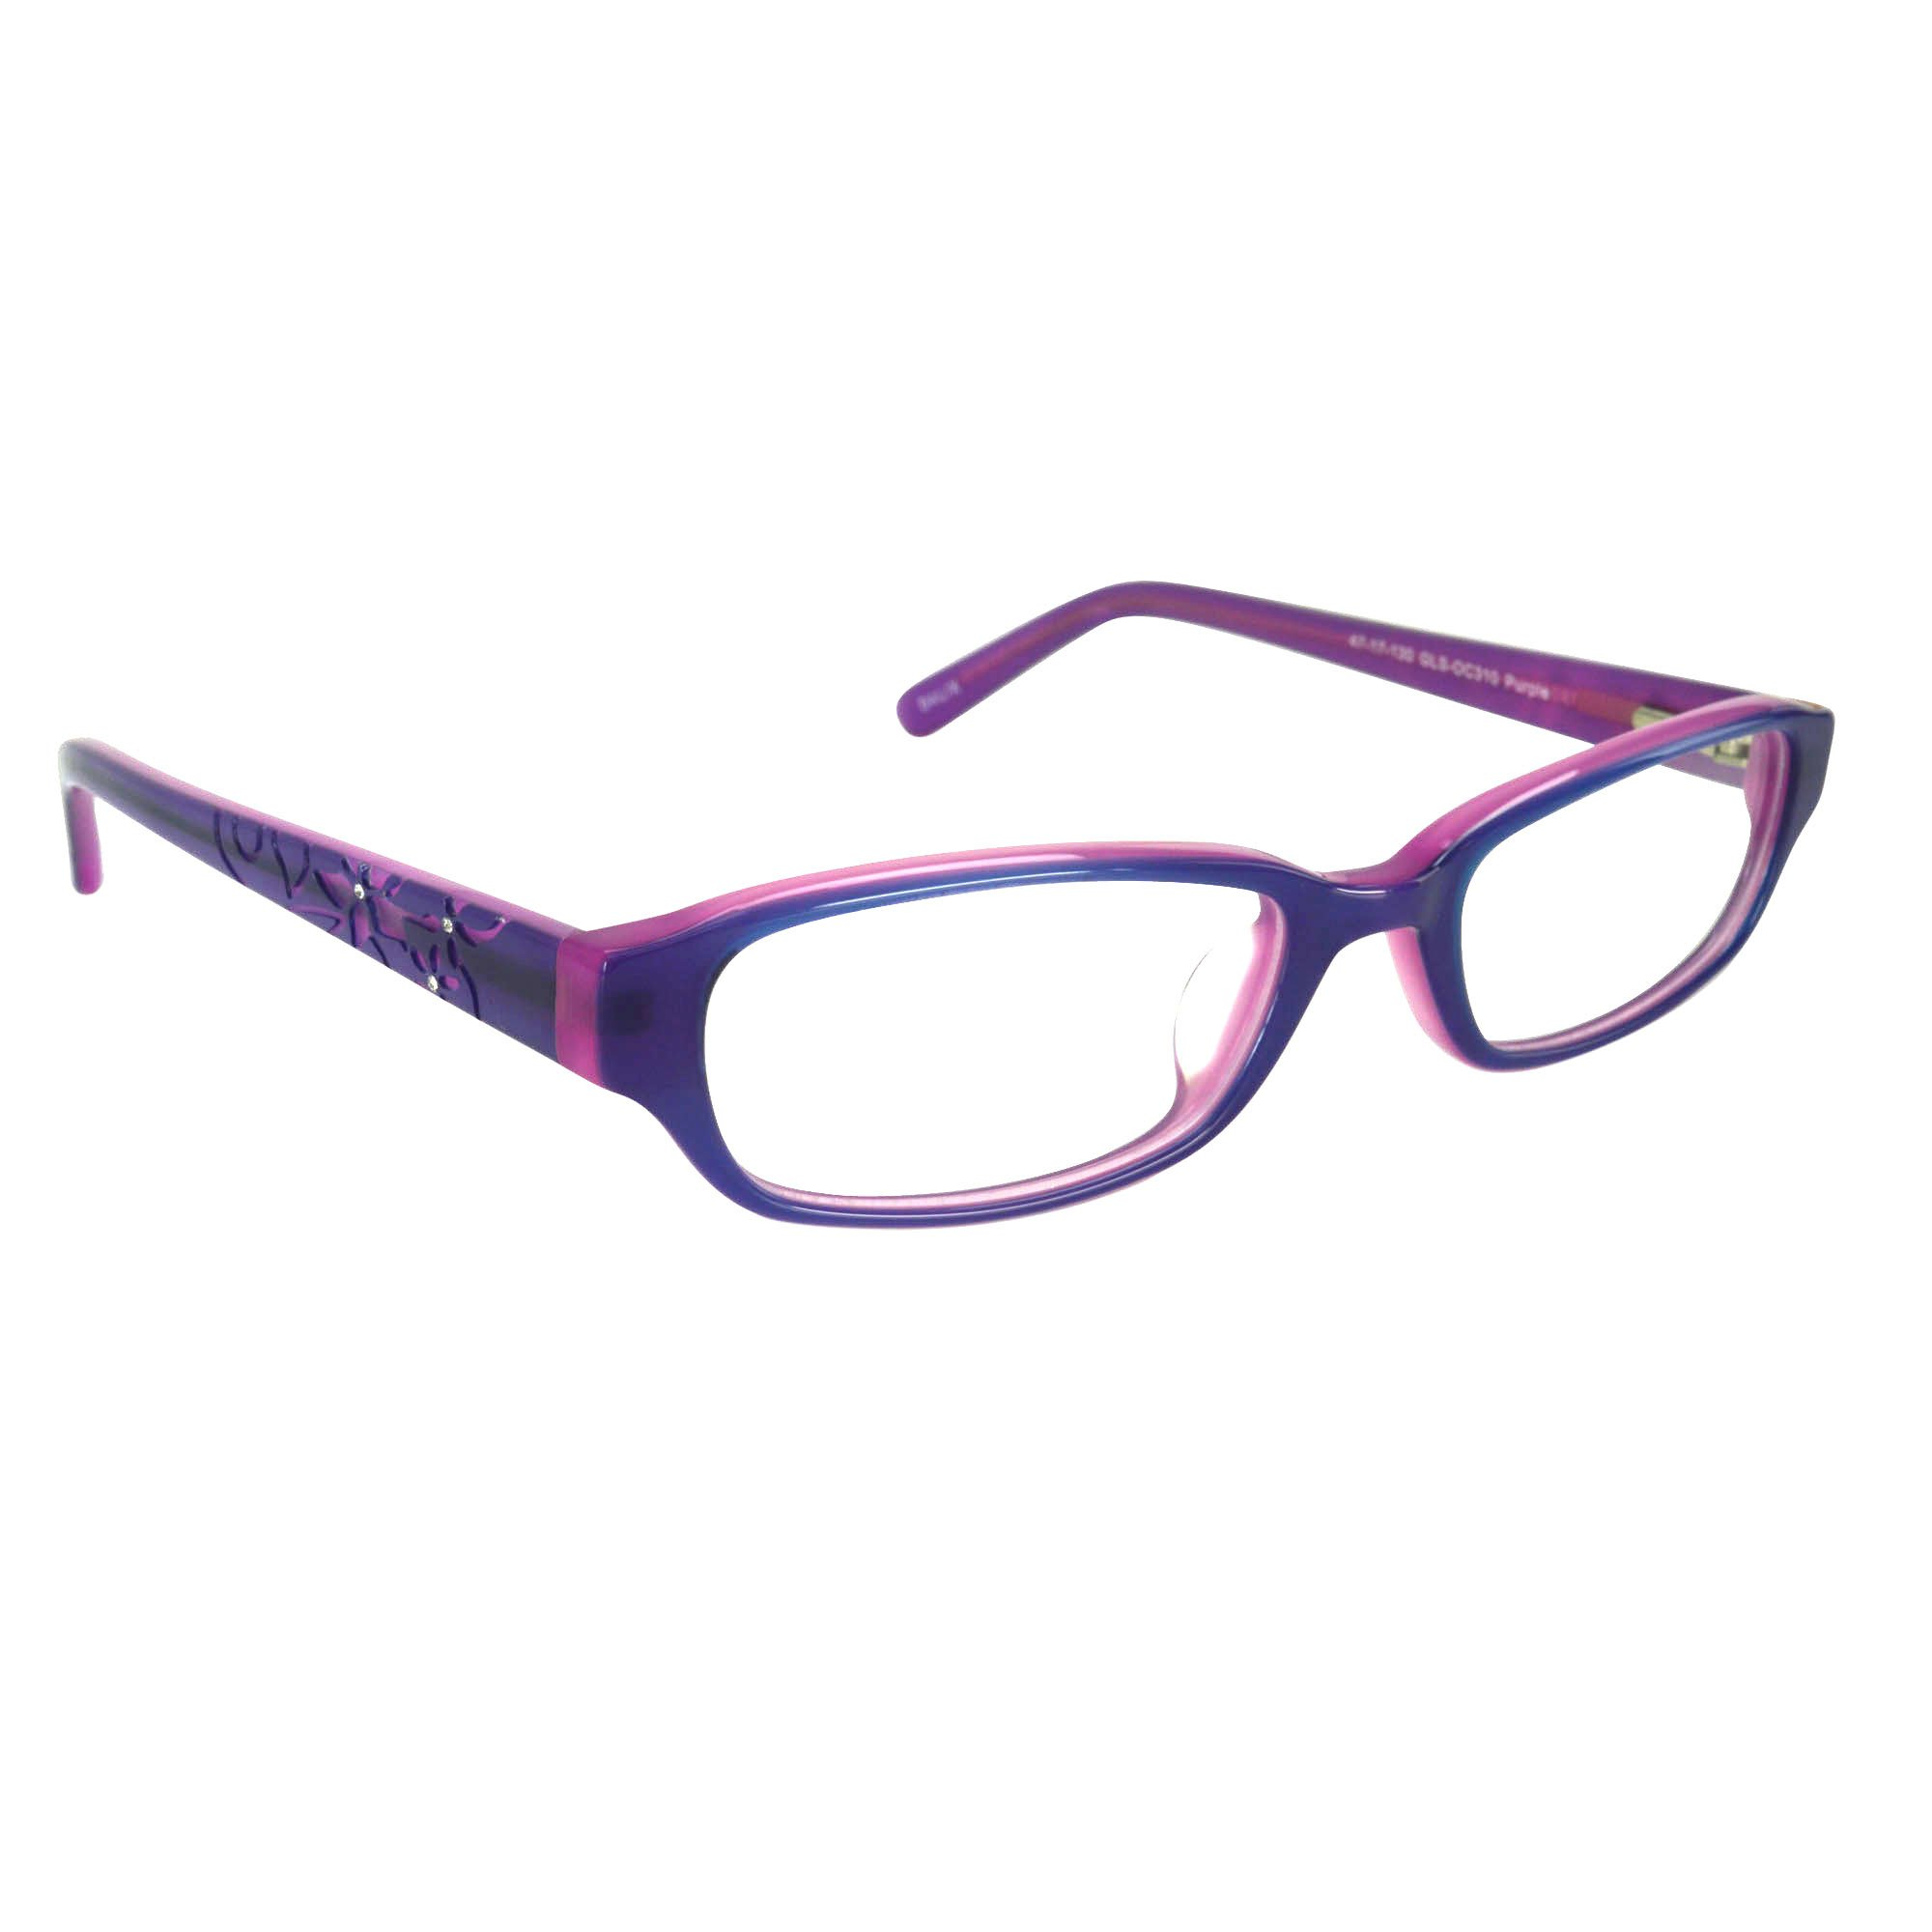 Childrens Girls Prescription Eyeglasses Frames in Purple 47-17-130